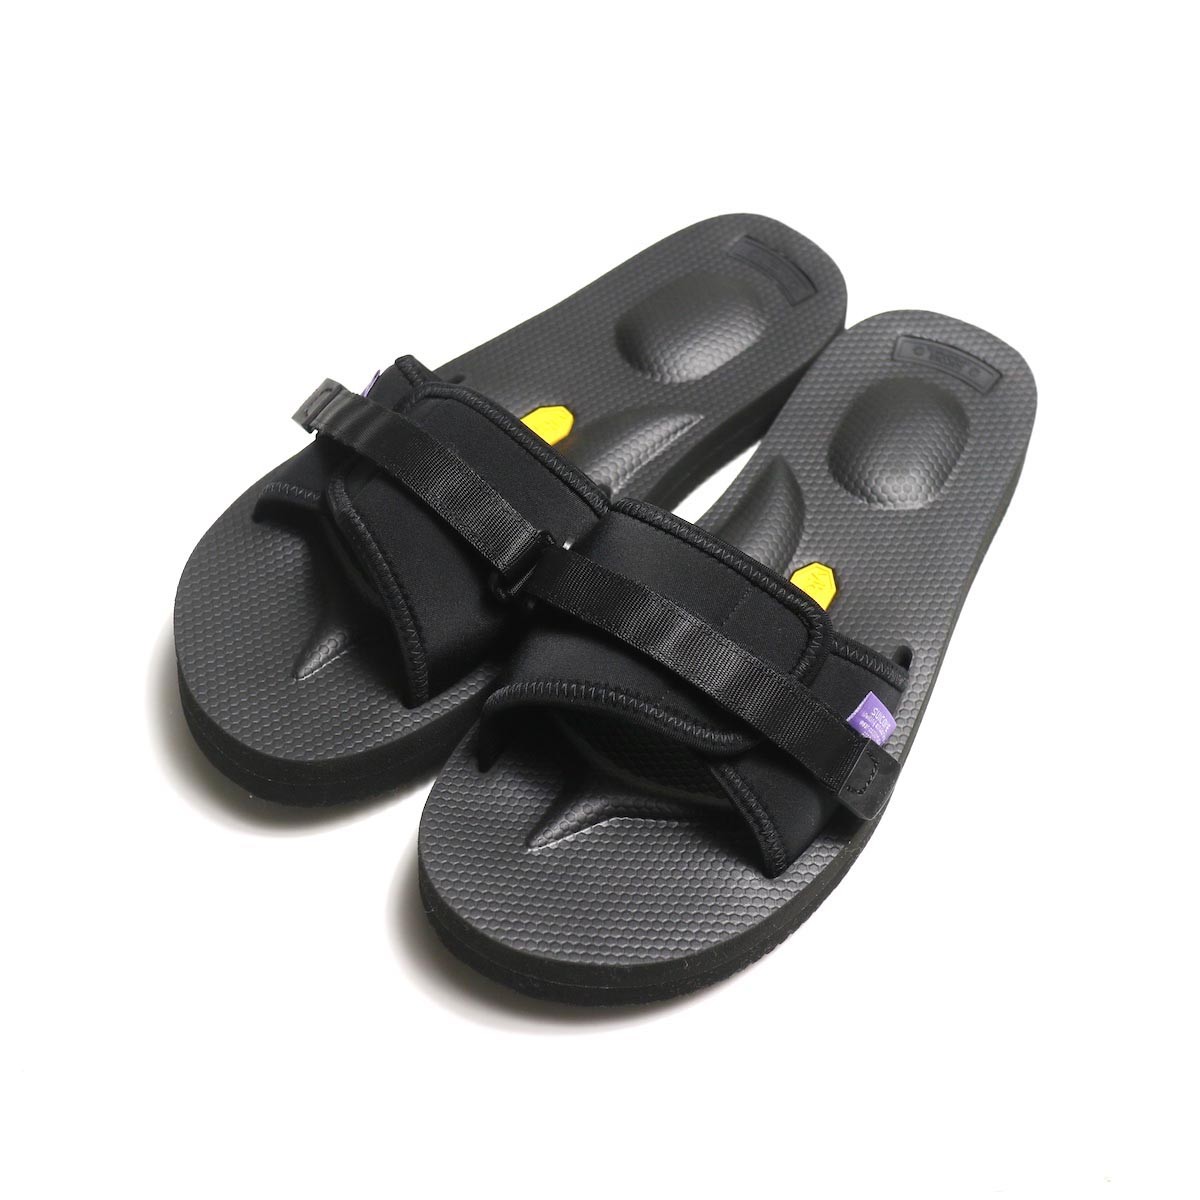 NEPENTHES × SUICOKE PURPLE LABEL / SLIDE-IN SANDAL W/ A-B VIBRAM - NEOPRENE